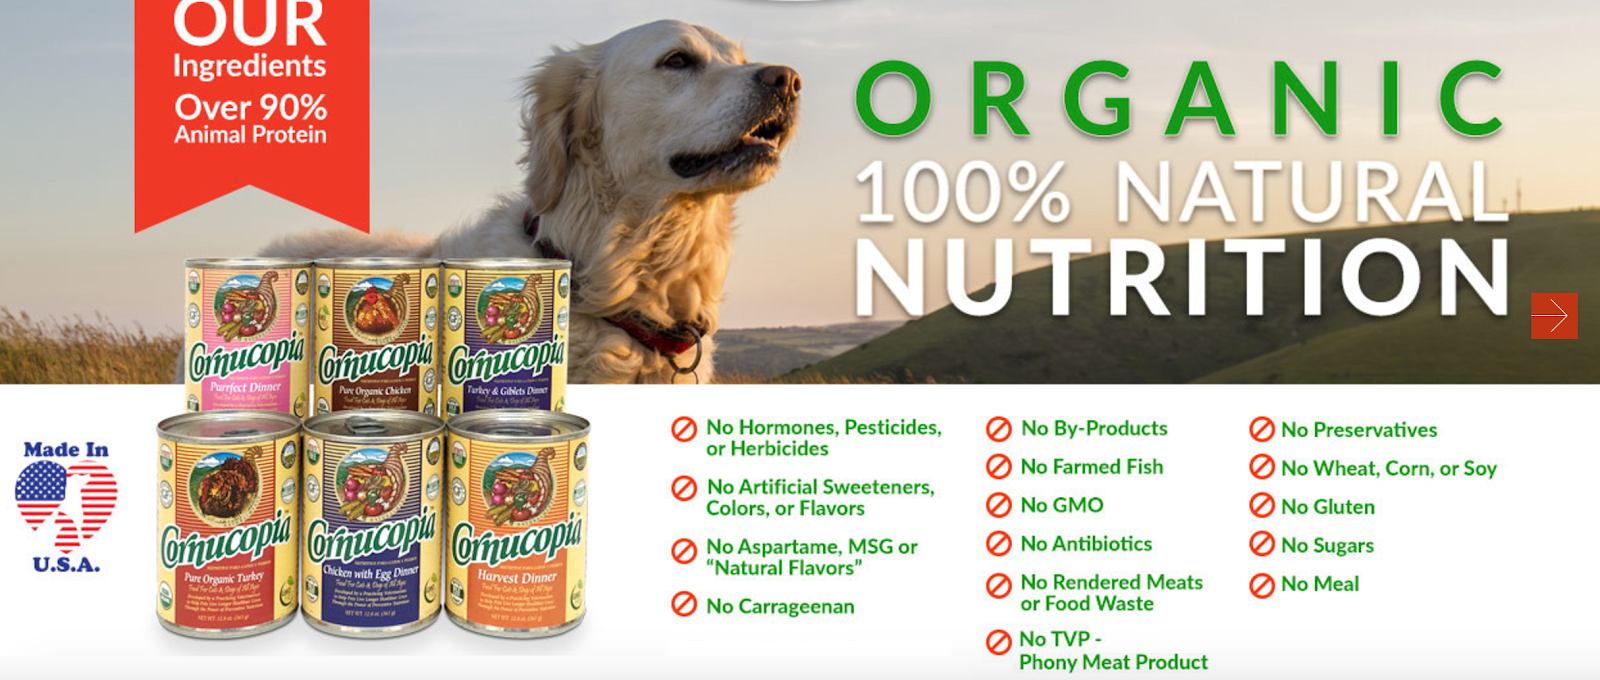 Certified Organic Canned Dog Food